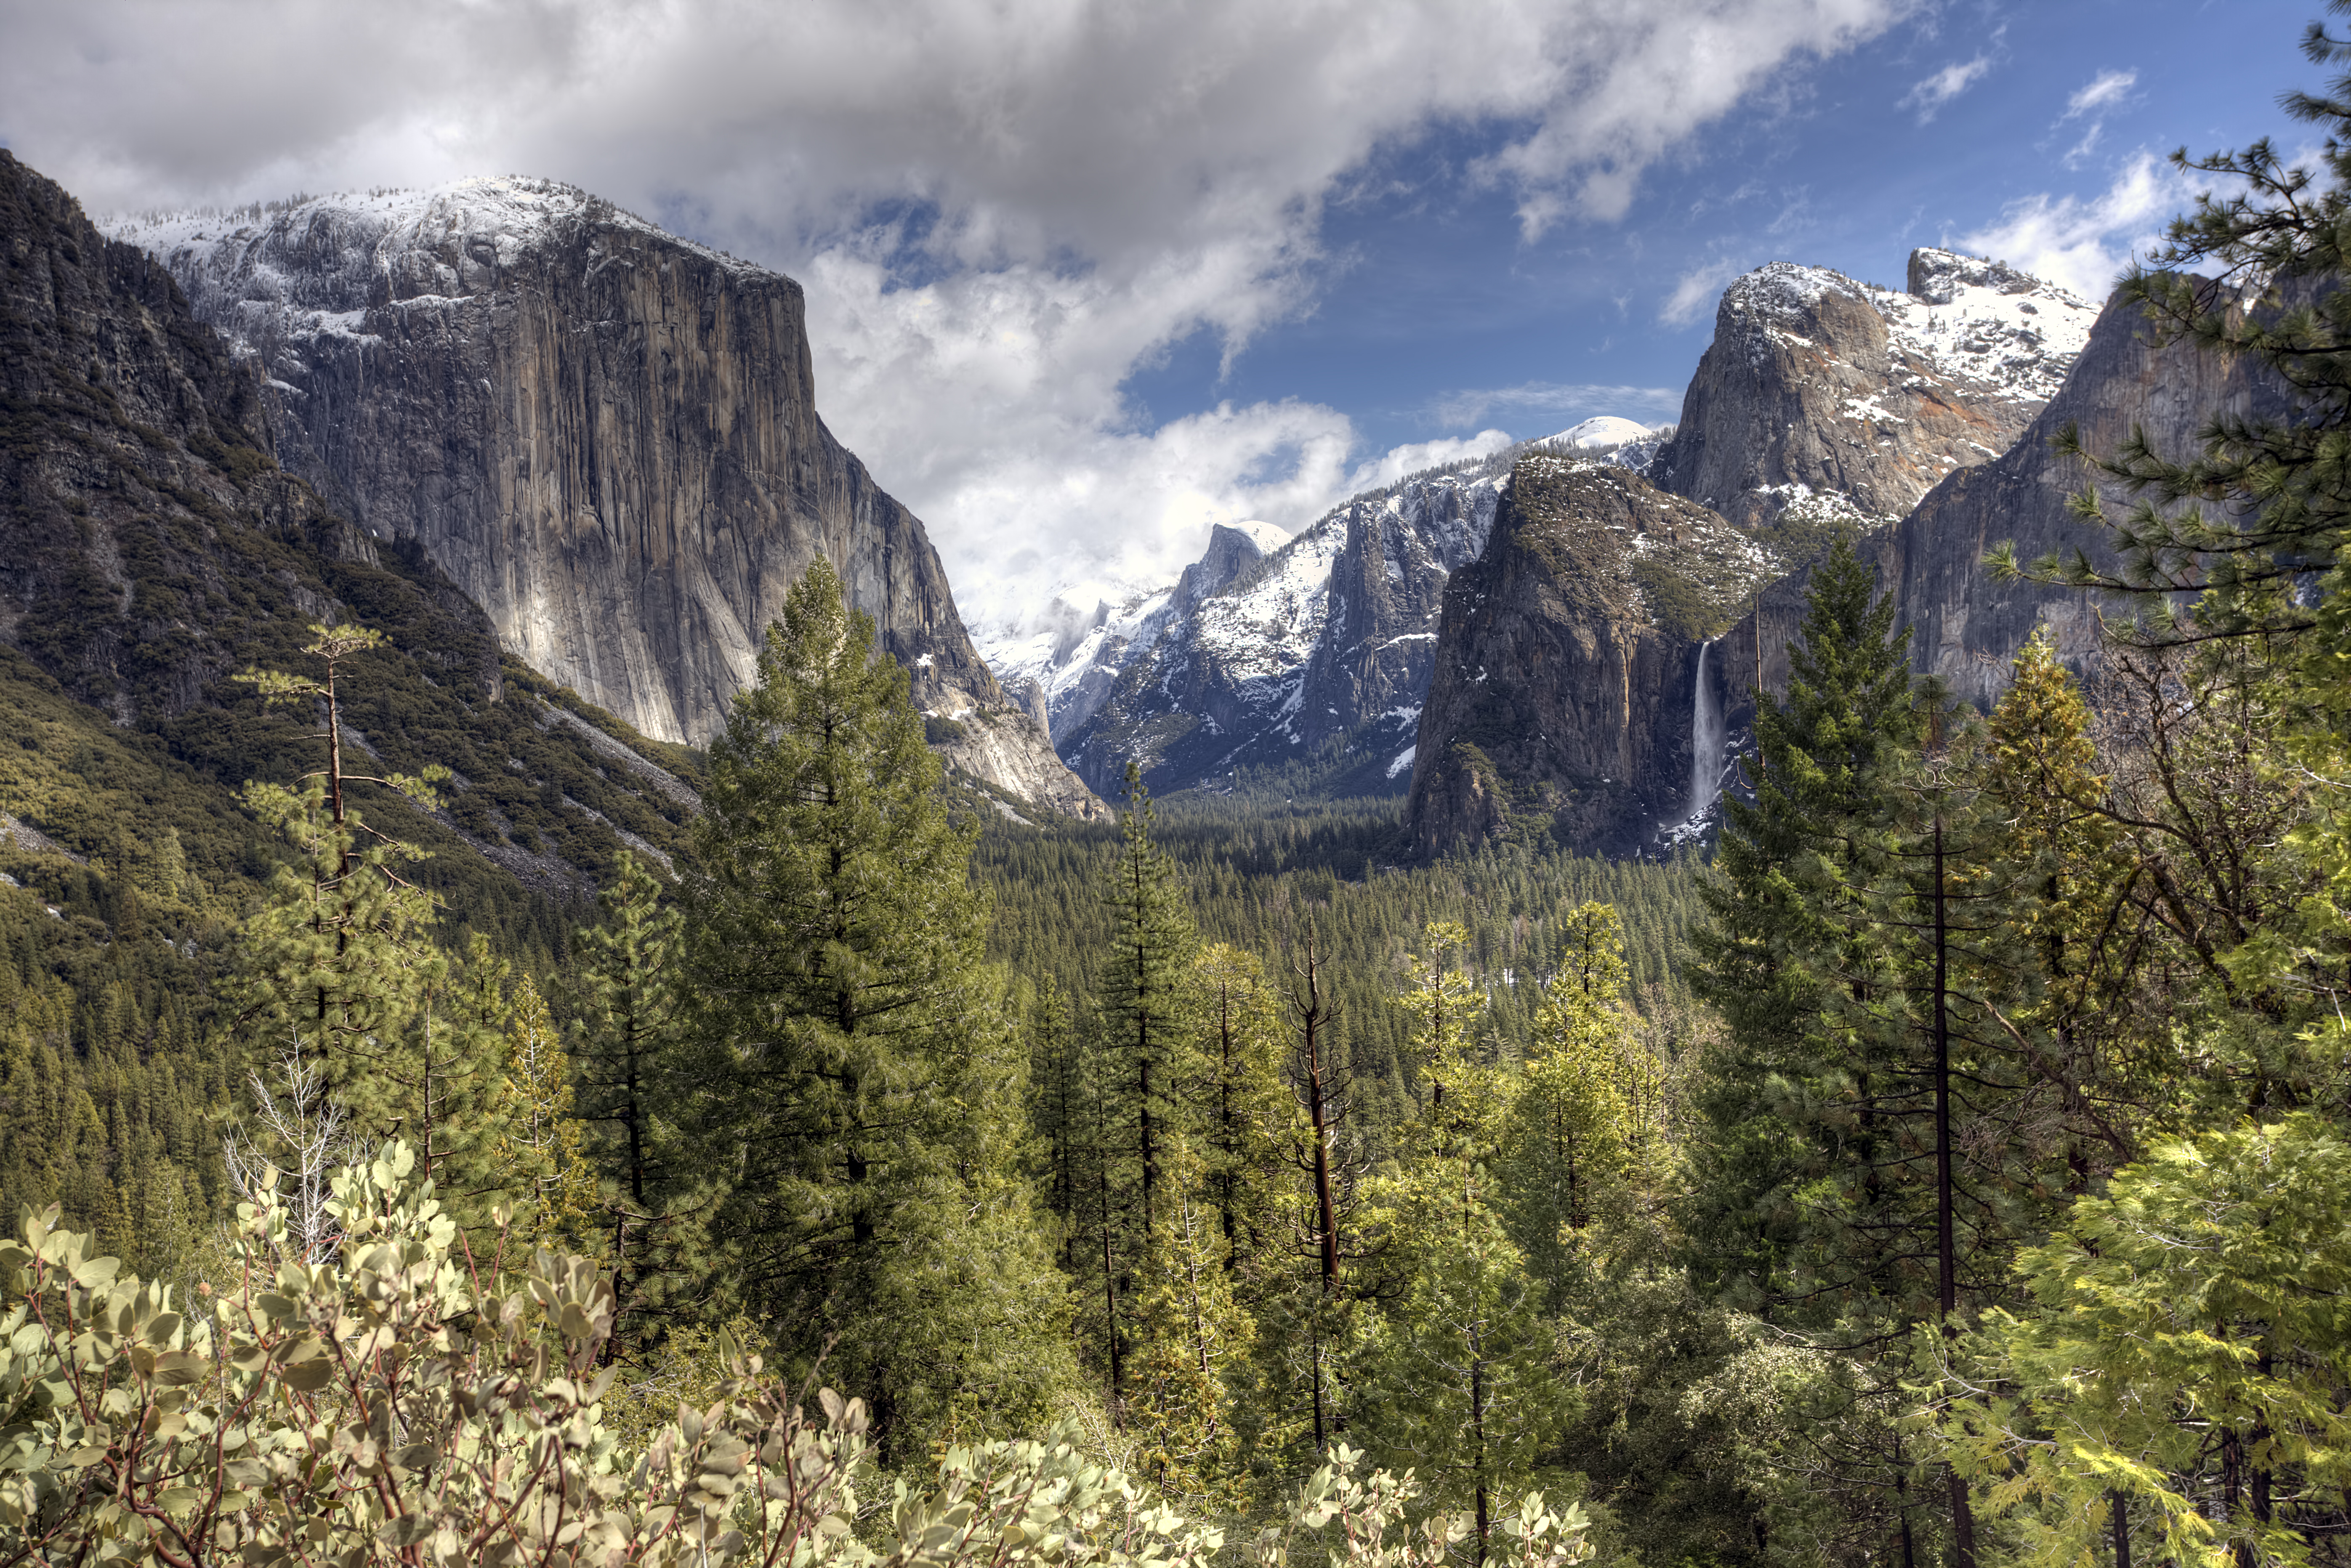 Bing Images - Yosemite Snow - Tunnel View in Yosemite National ...